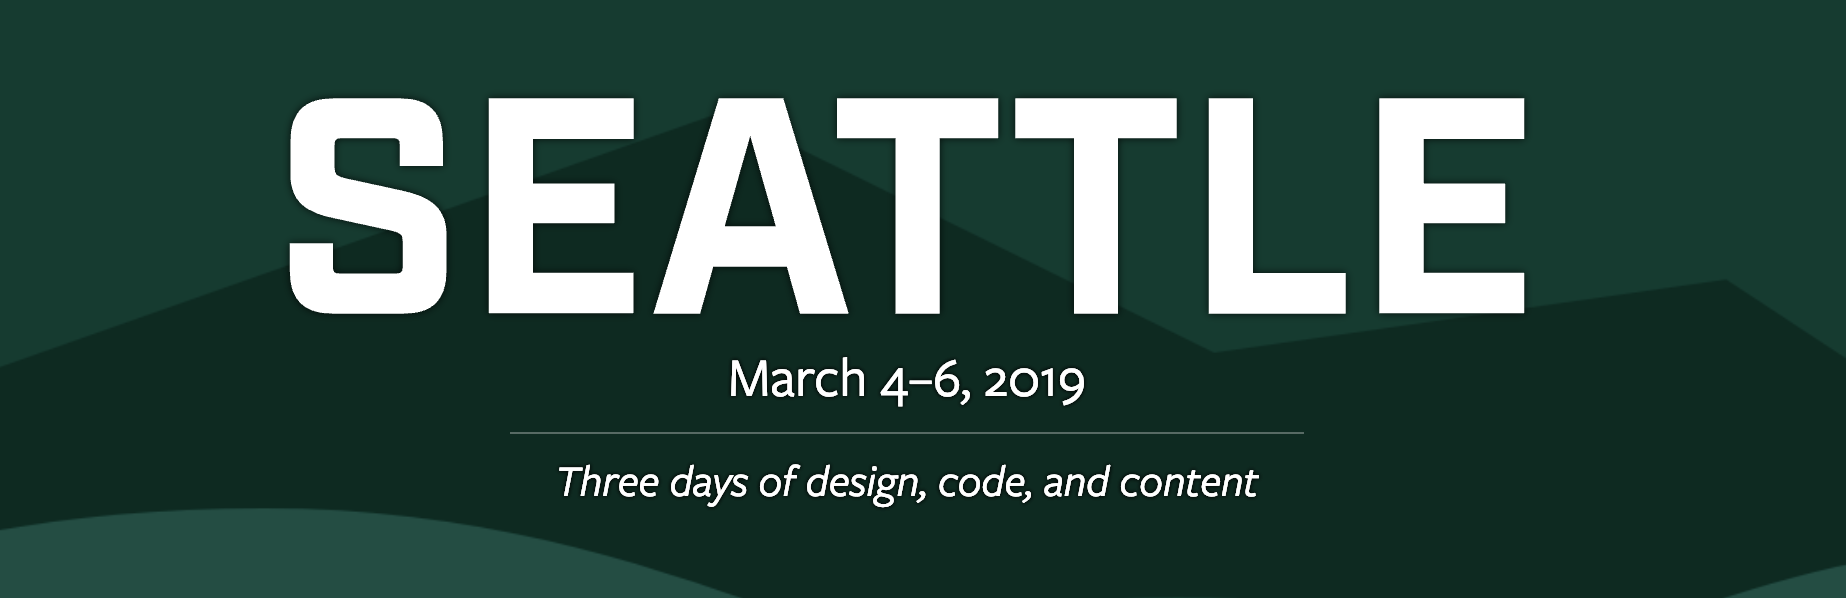 Seattle, March 4-6, 2019, three days of design, code, and content.